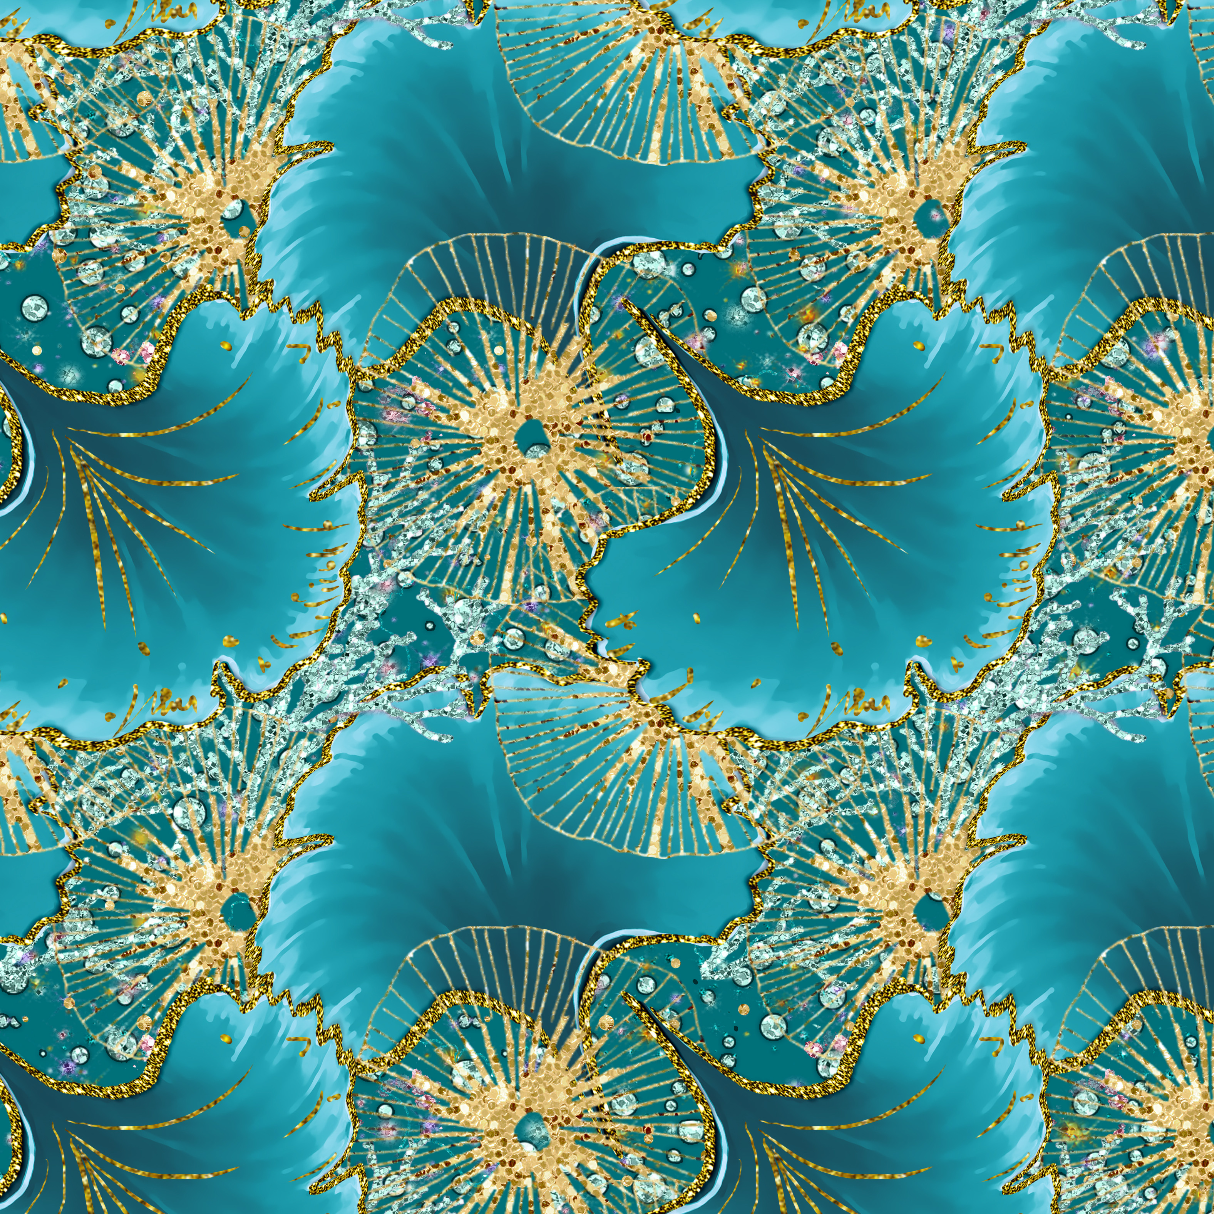 PRE ORDER - Magical Mermaids Green Shells - Digital Fabric Print